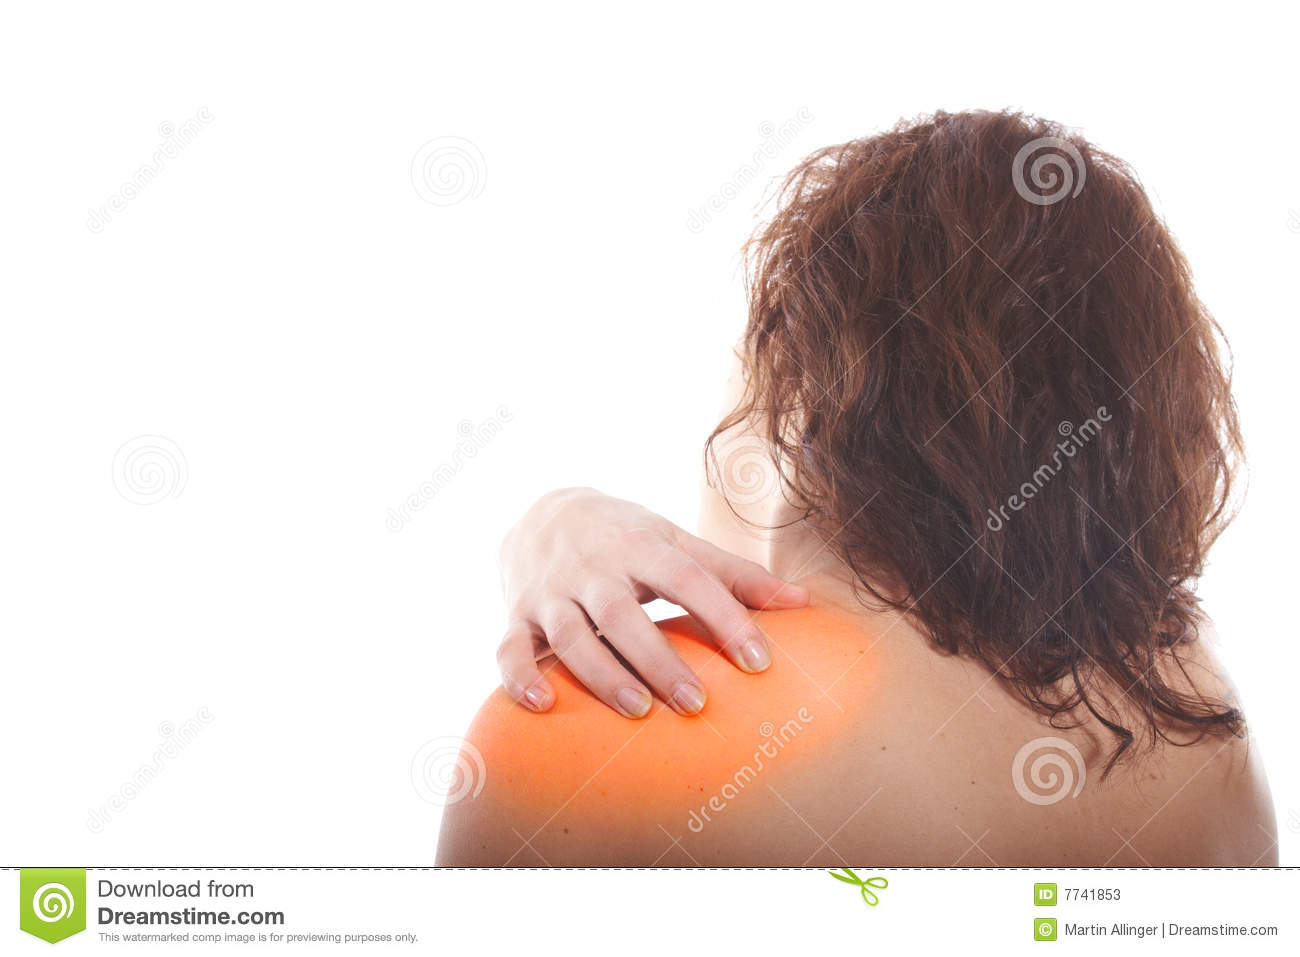 Burning Pain Stock Photos - Image: 7741853